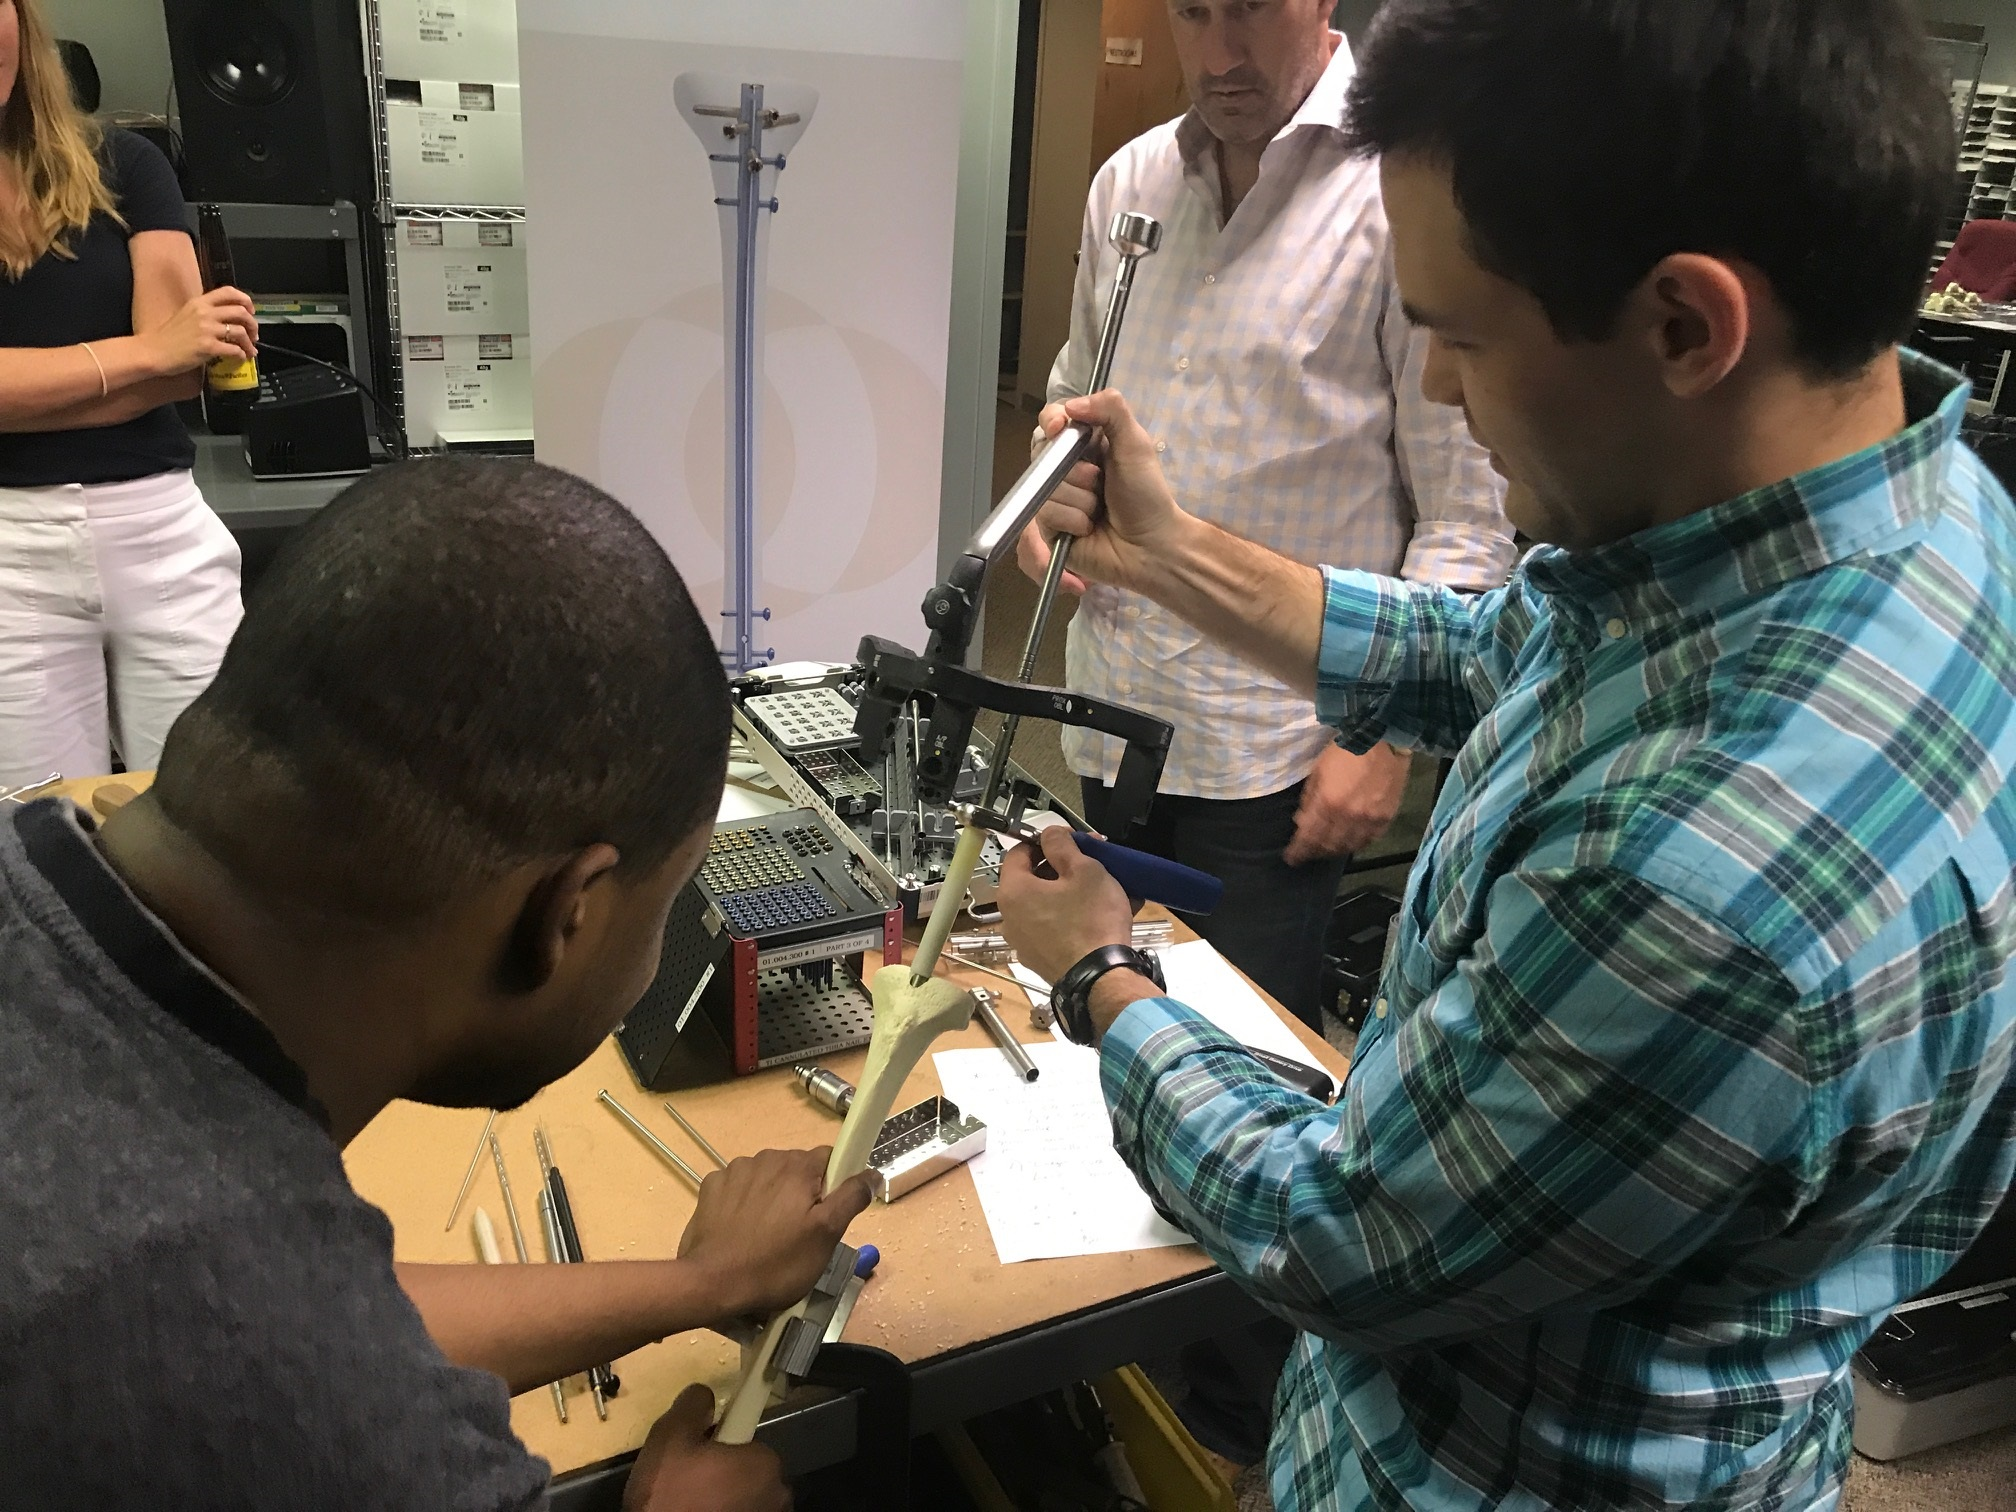 Kevin Laroche assists Aaron Casp during a tibial nail sawbones lab